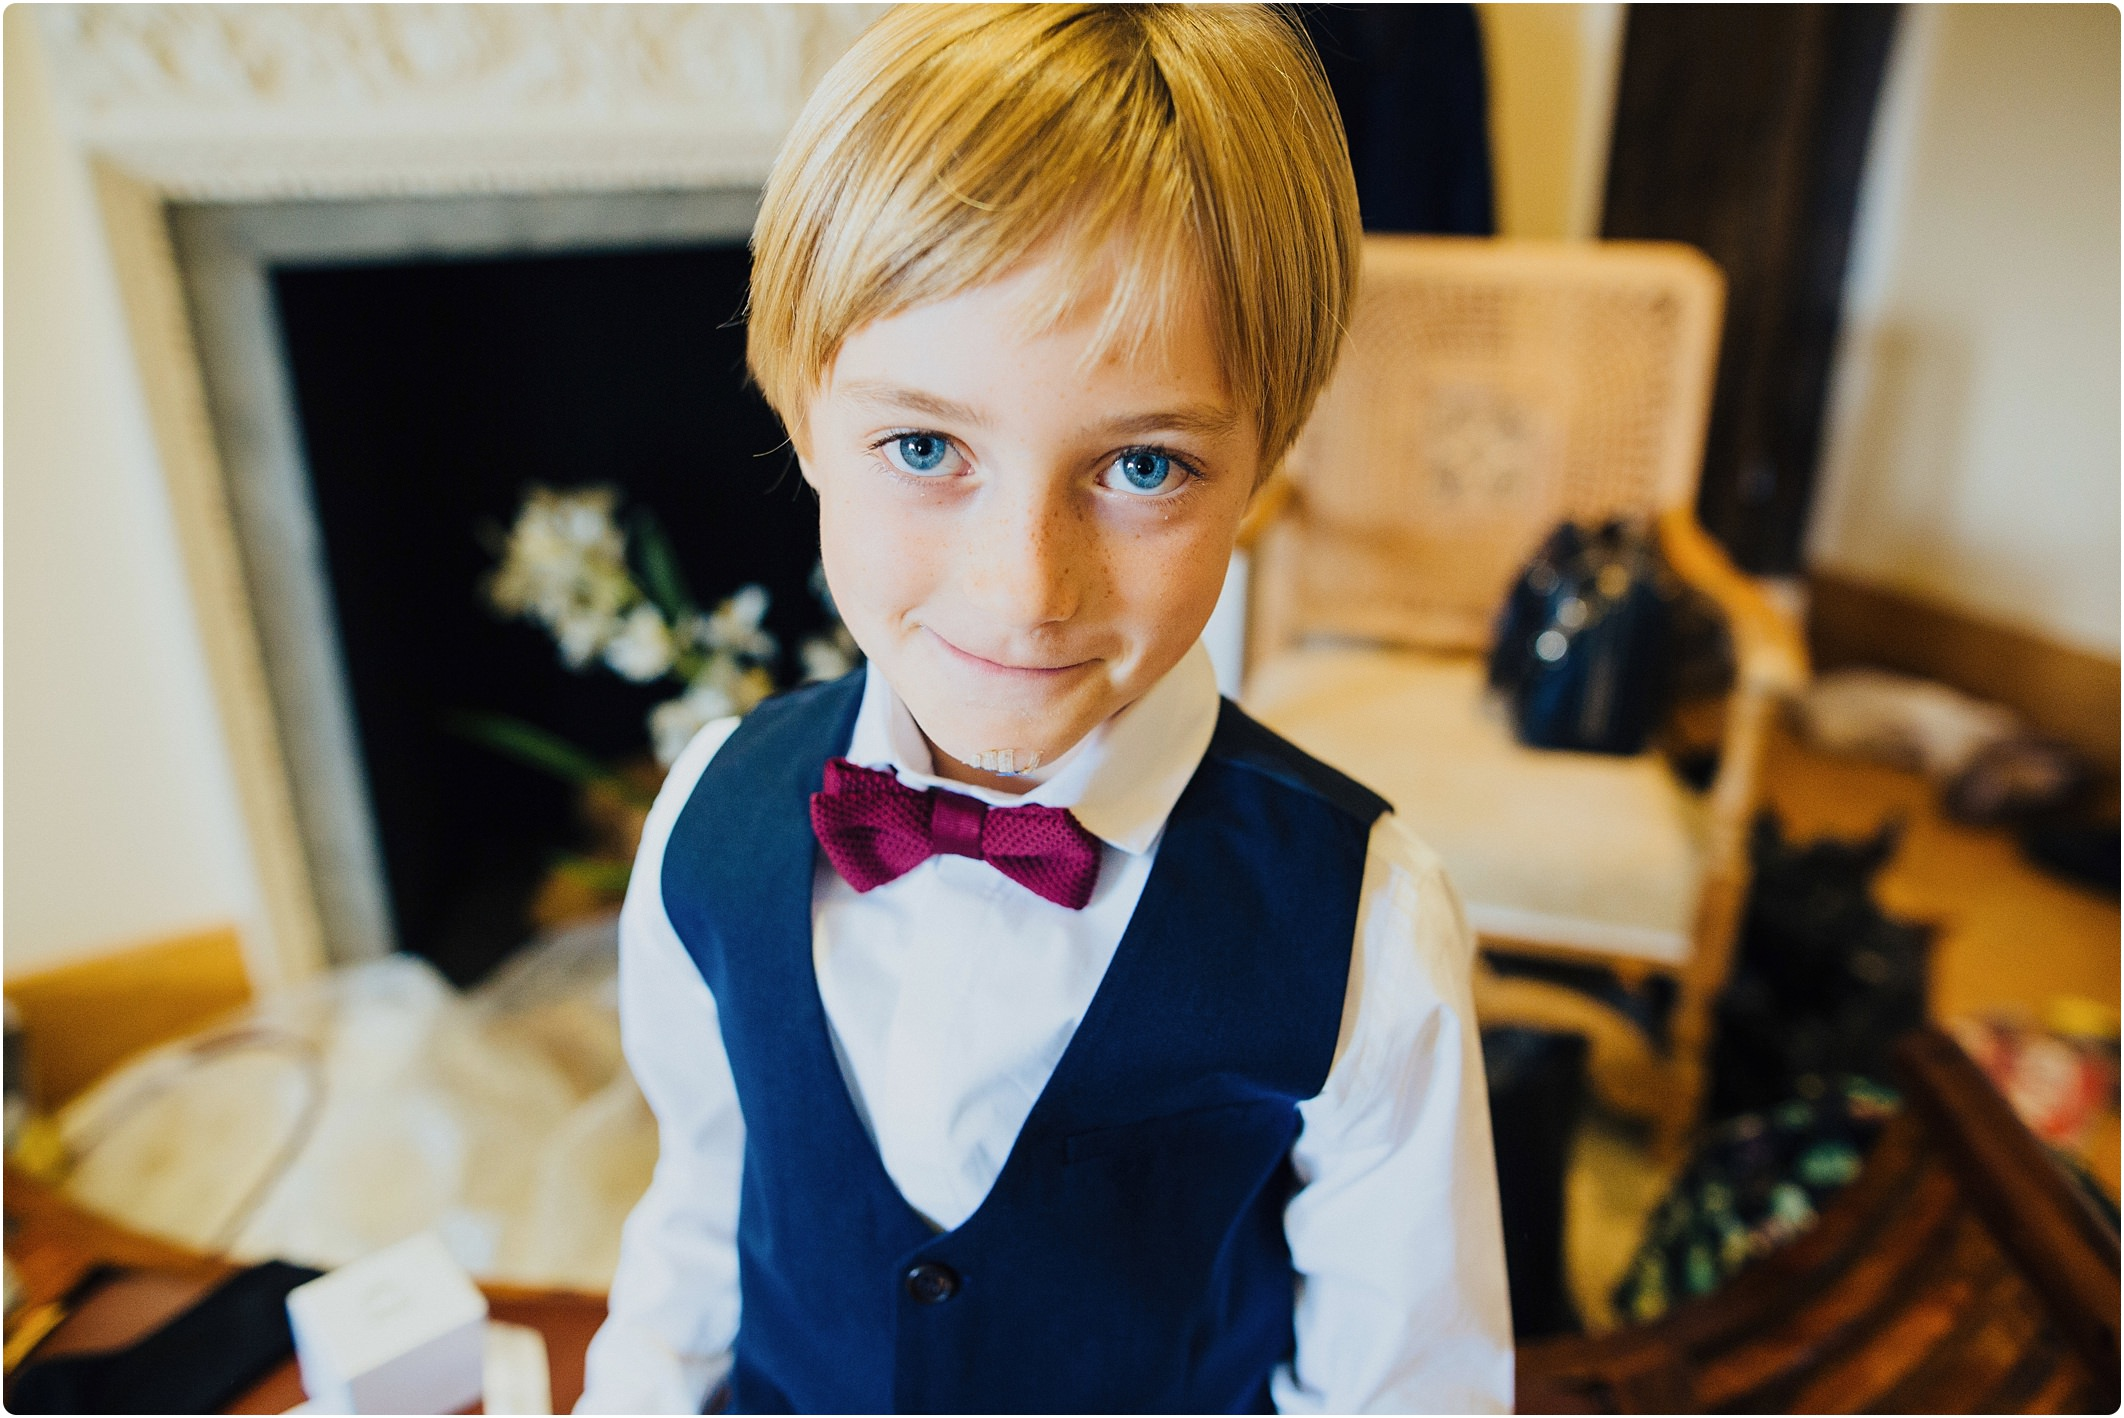 notley abbey wedding page boy